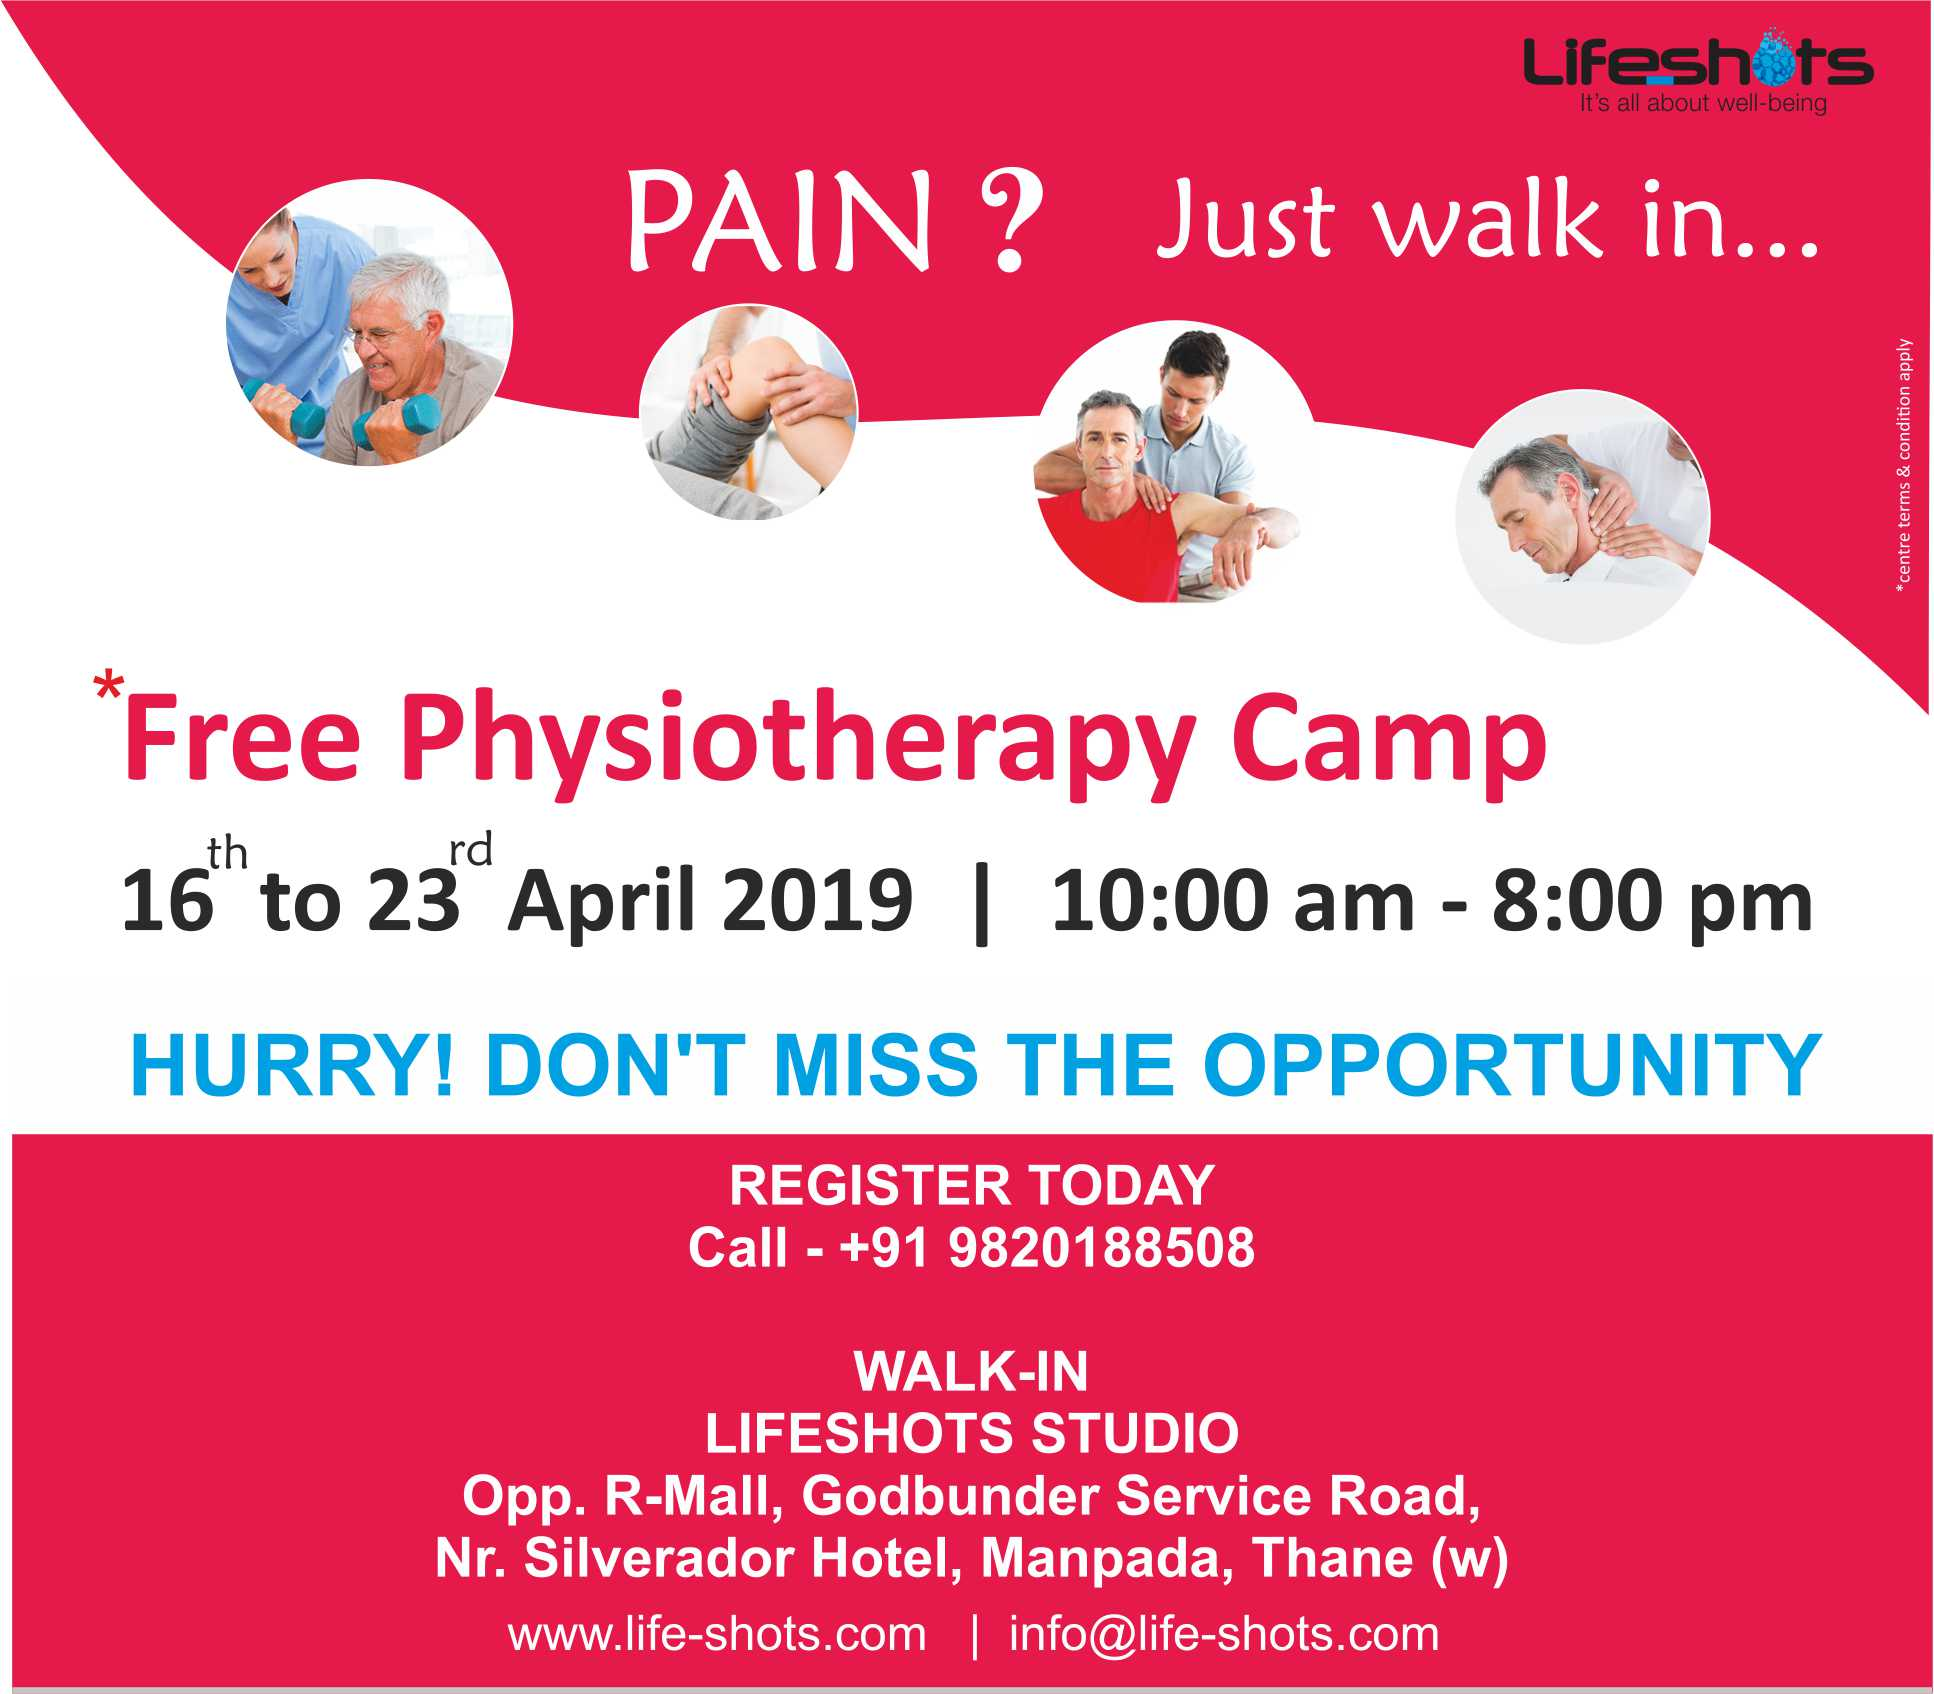 PhysiOcamp mrr - Physiotherpy Camp